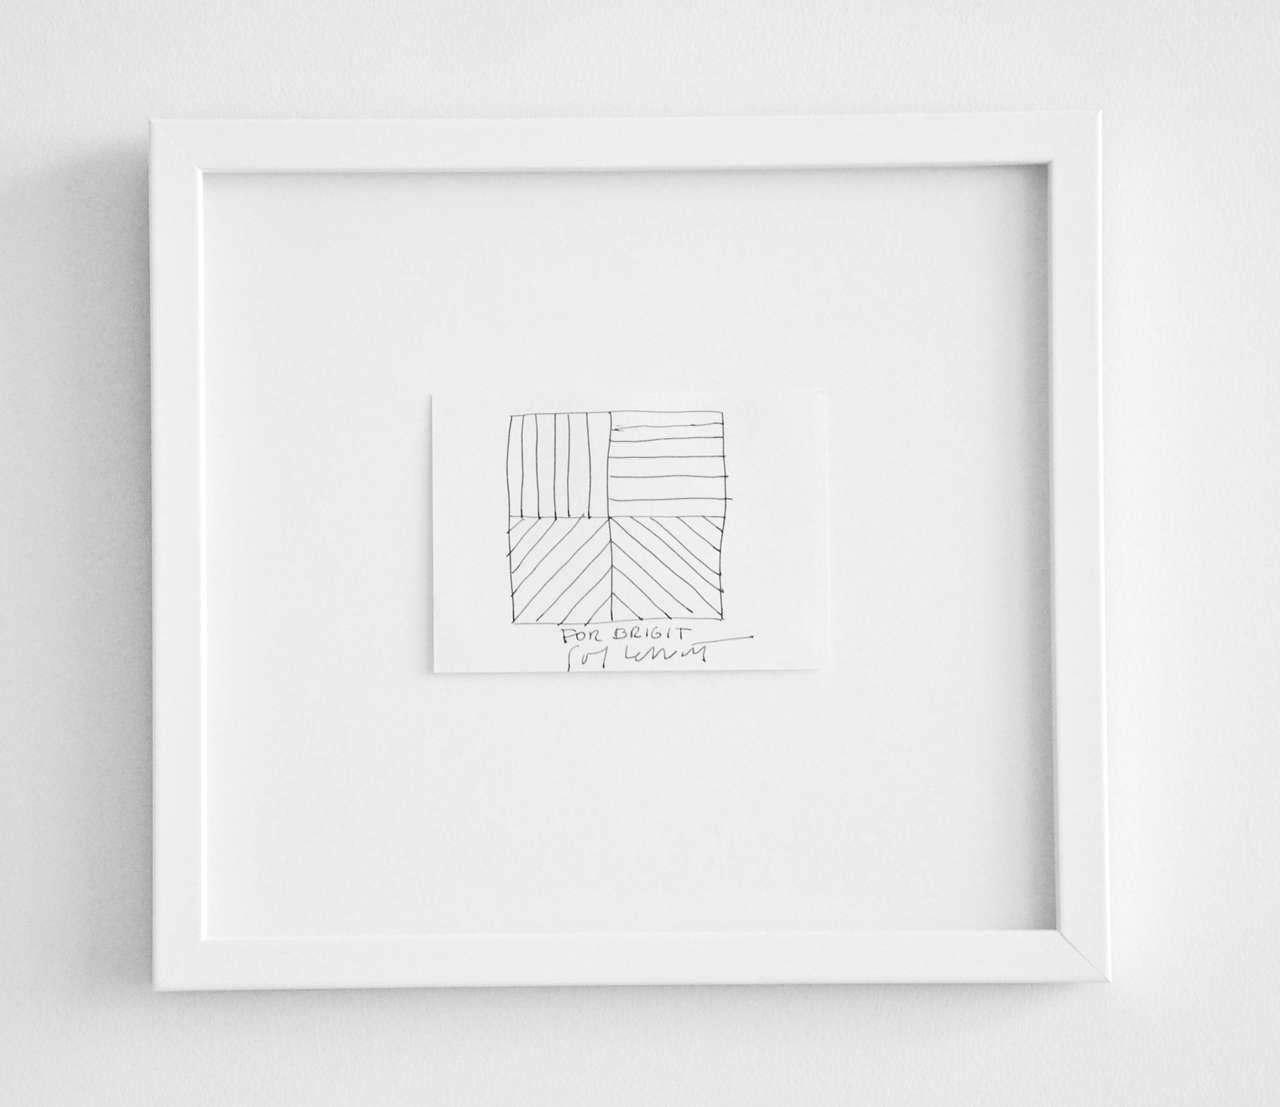 Ink Drawing by Sol LeWitt, circa 2000 In Excellent Condition For Sale In Winnetka, IL